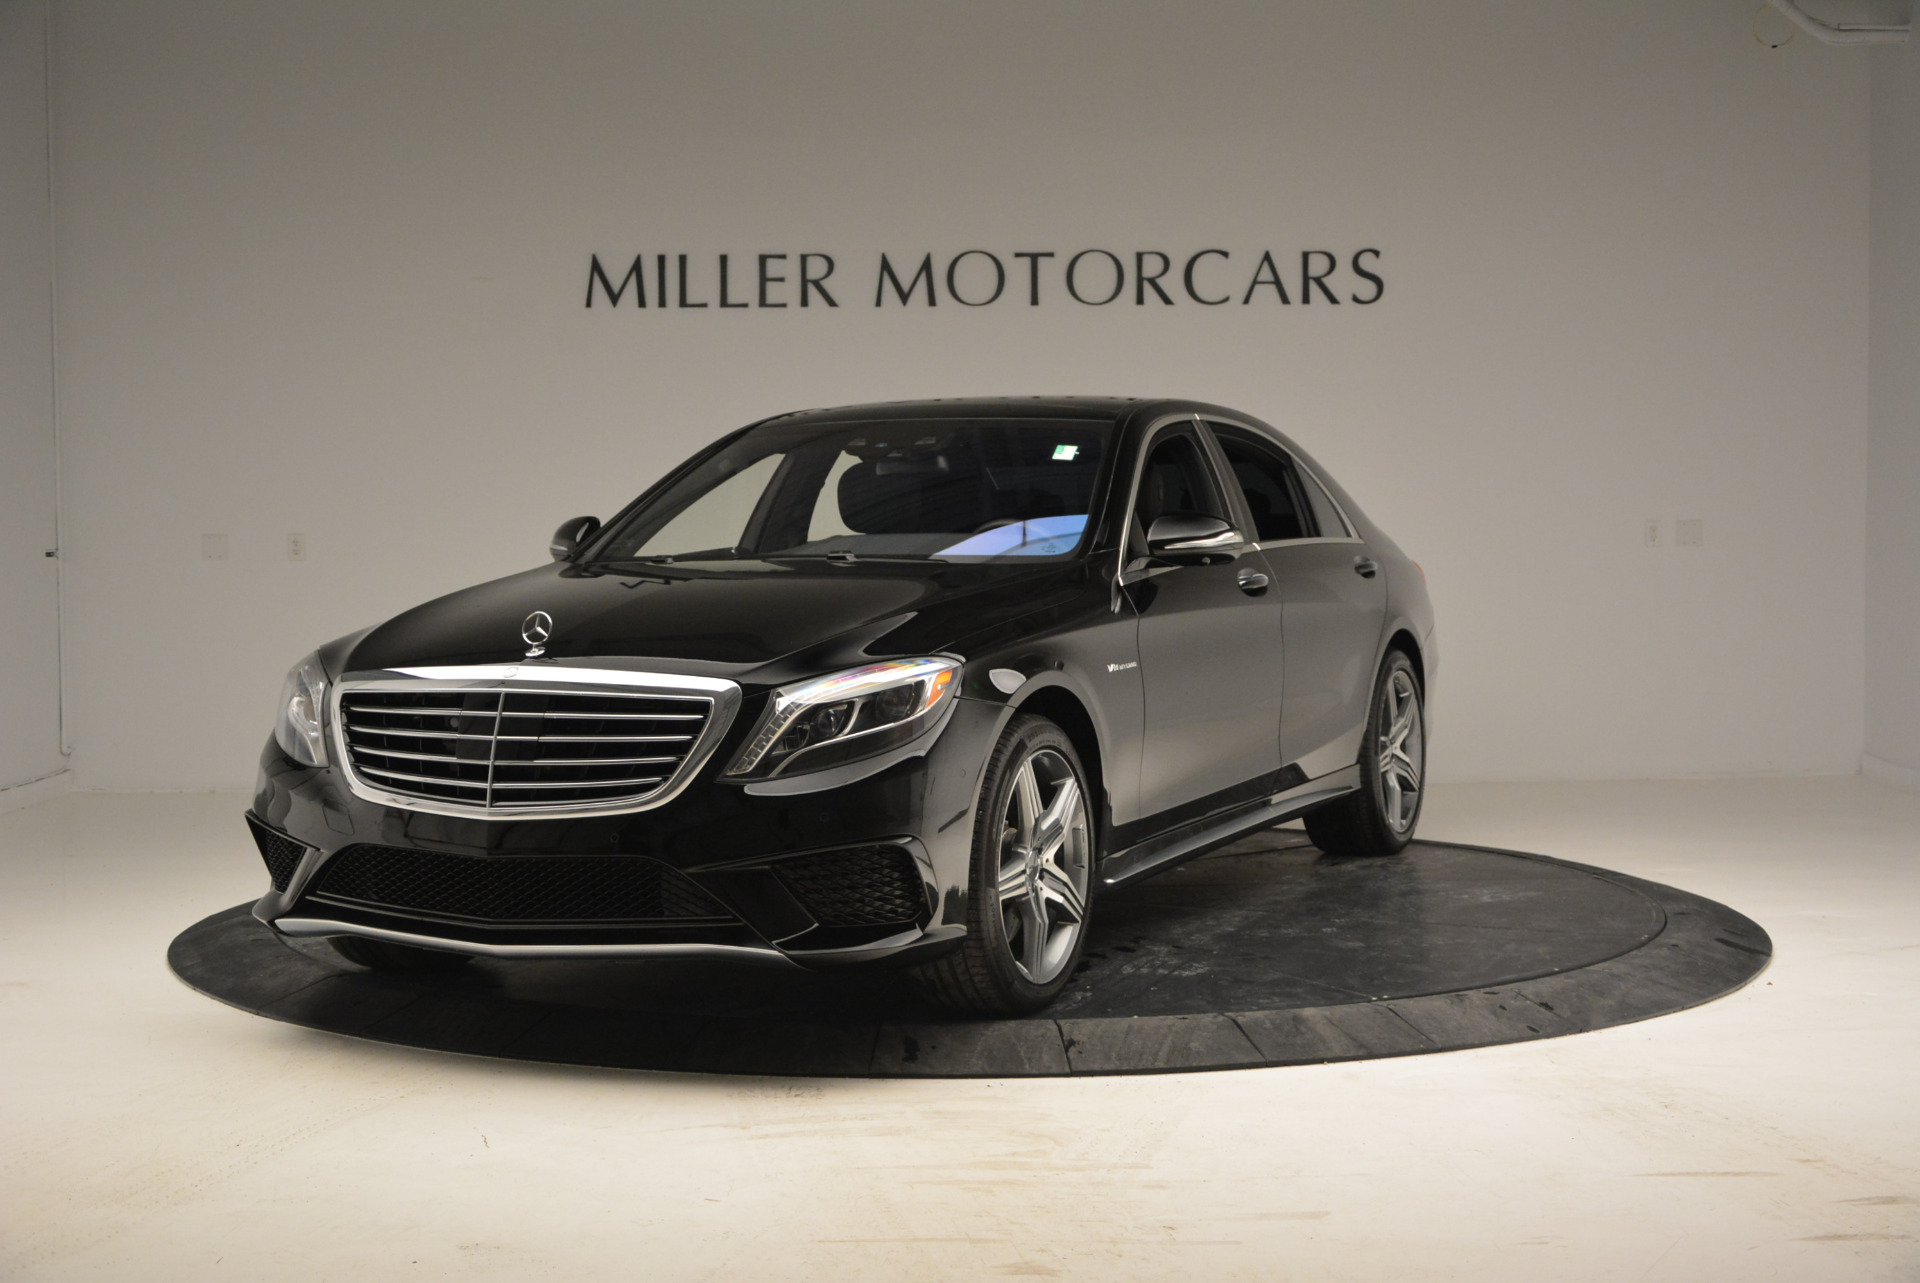 Used 2014 Mercedes Benz S-Class S 63 AMG for sale Sold at Bentley Greenwich in Greenwich CT 06830 1